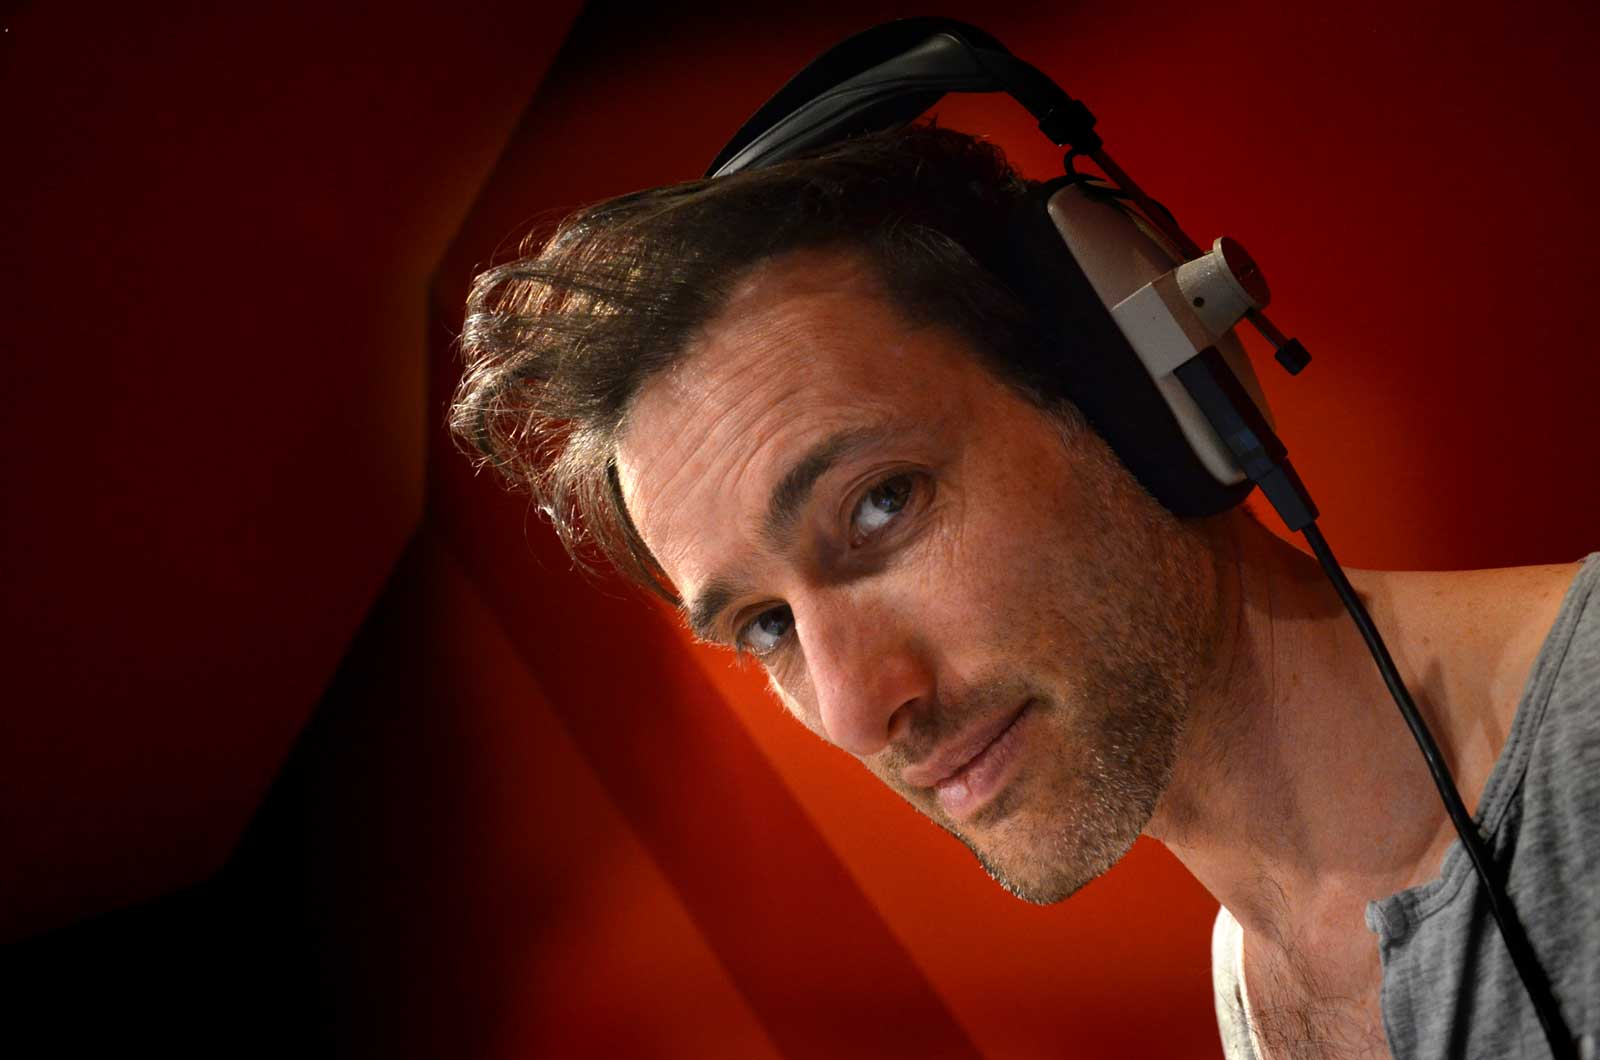 Ed Stoppard has been cast as Dan Dare in the new audio adventures from B7 Media